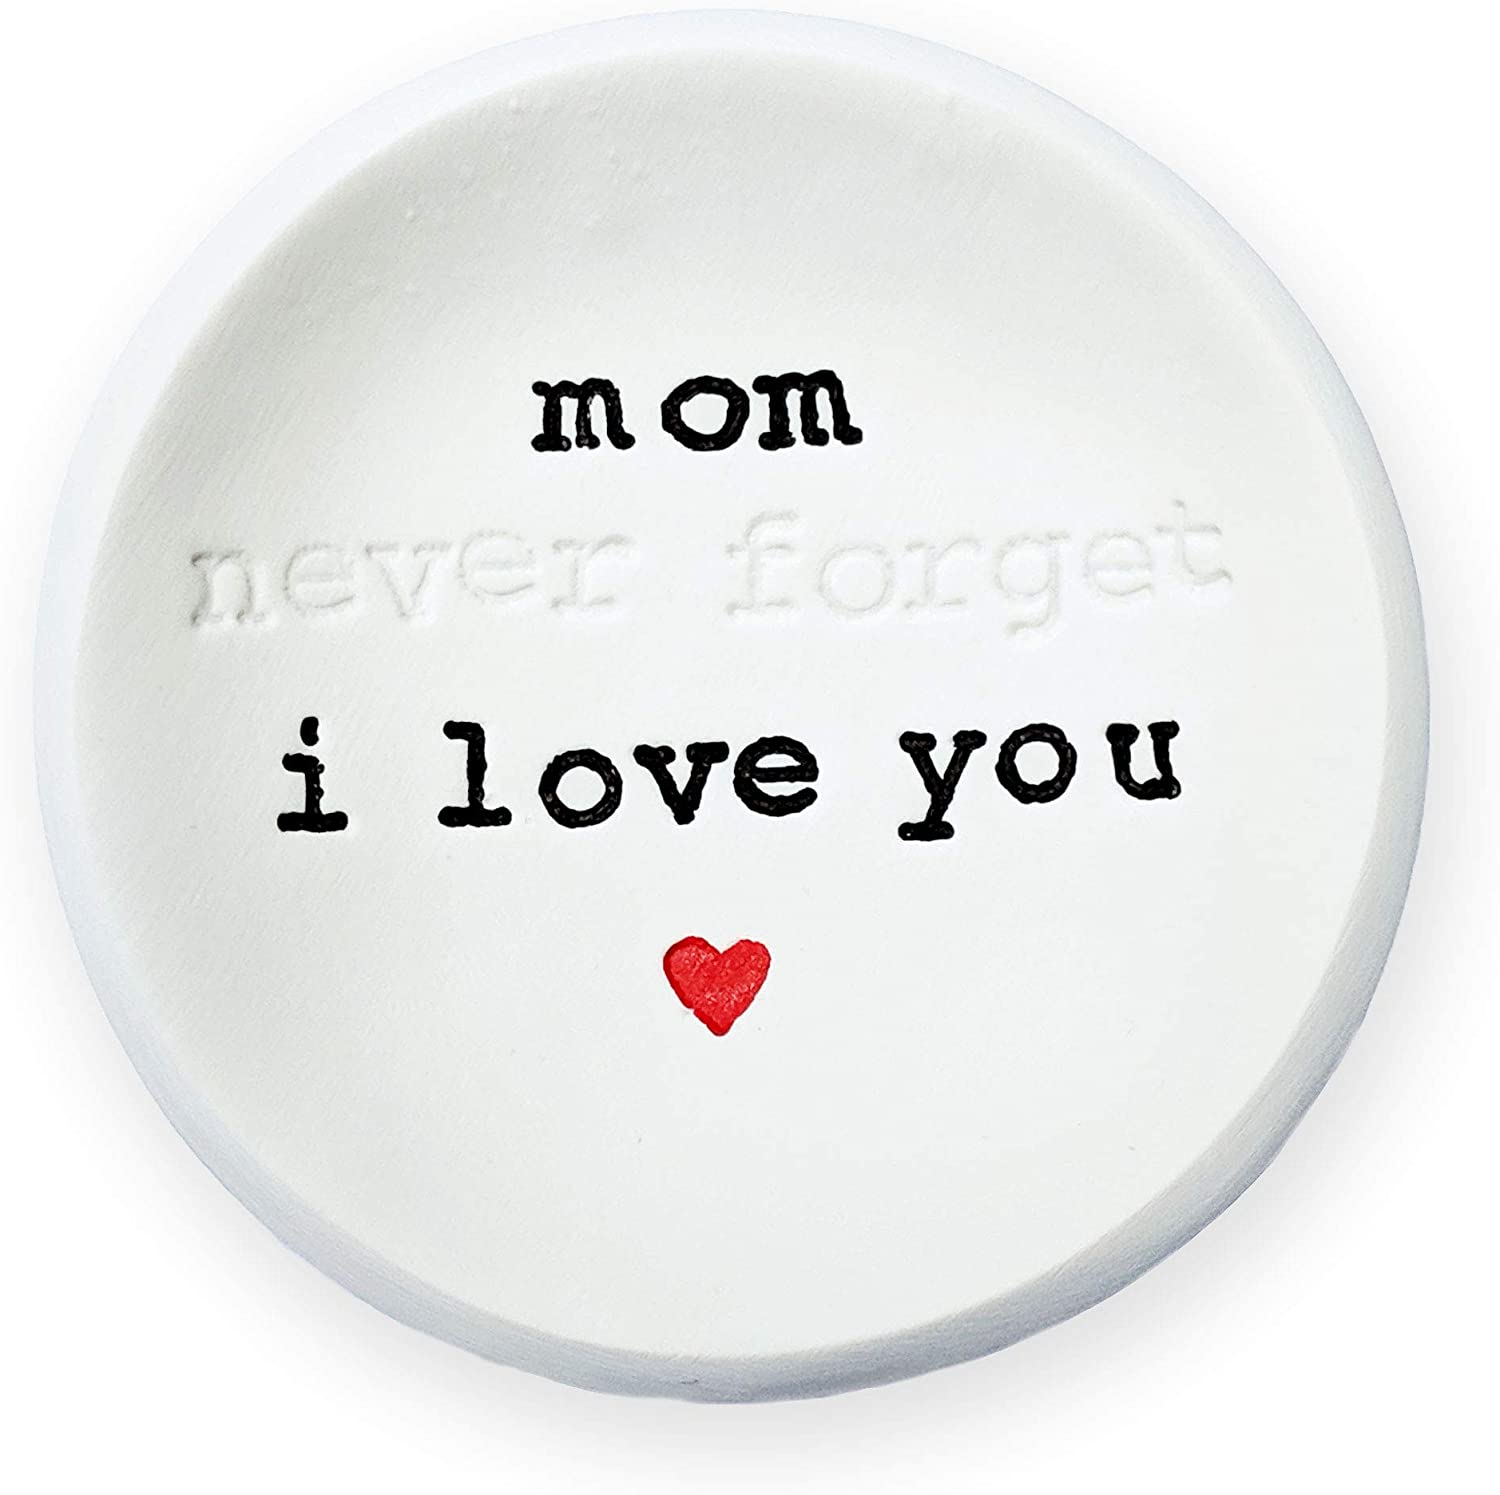 Wannabe Genius Birthday Gifts for Mom - Simple Ring Dish - Mom - Never Forget - I Love You - Matching Wristband